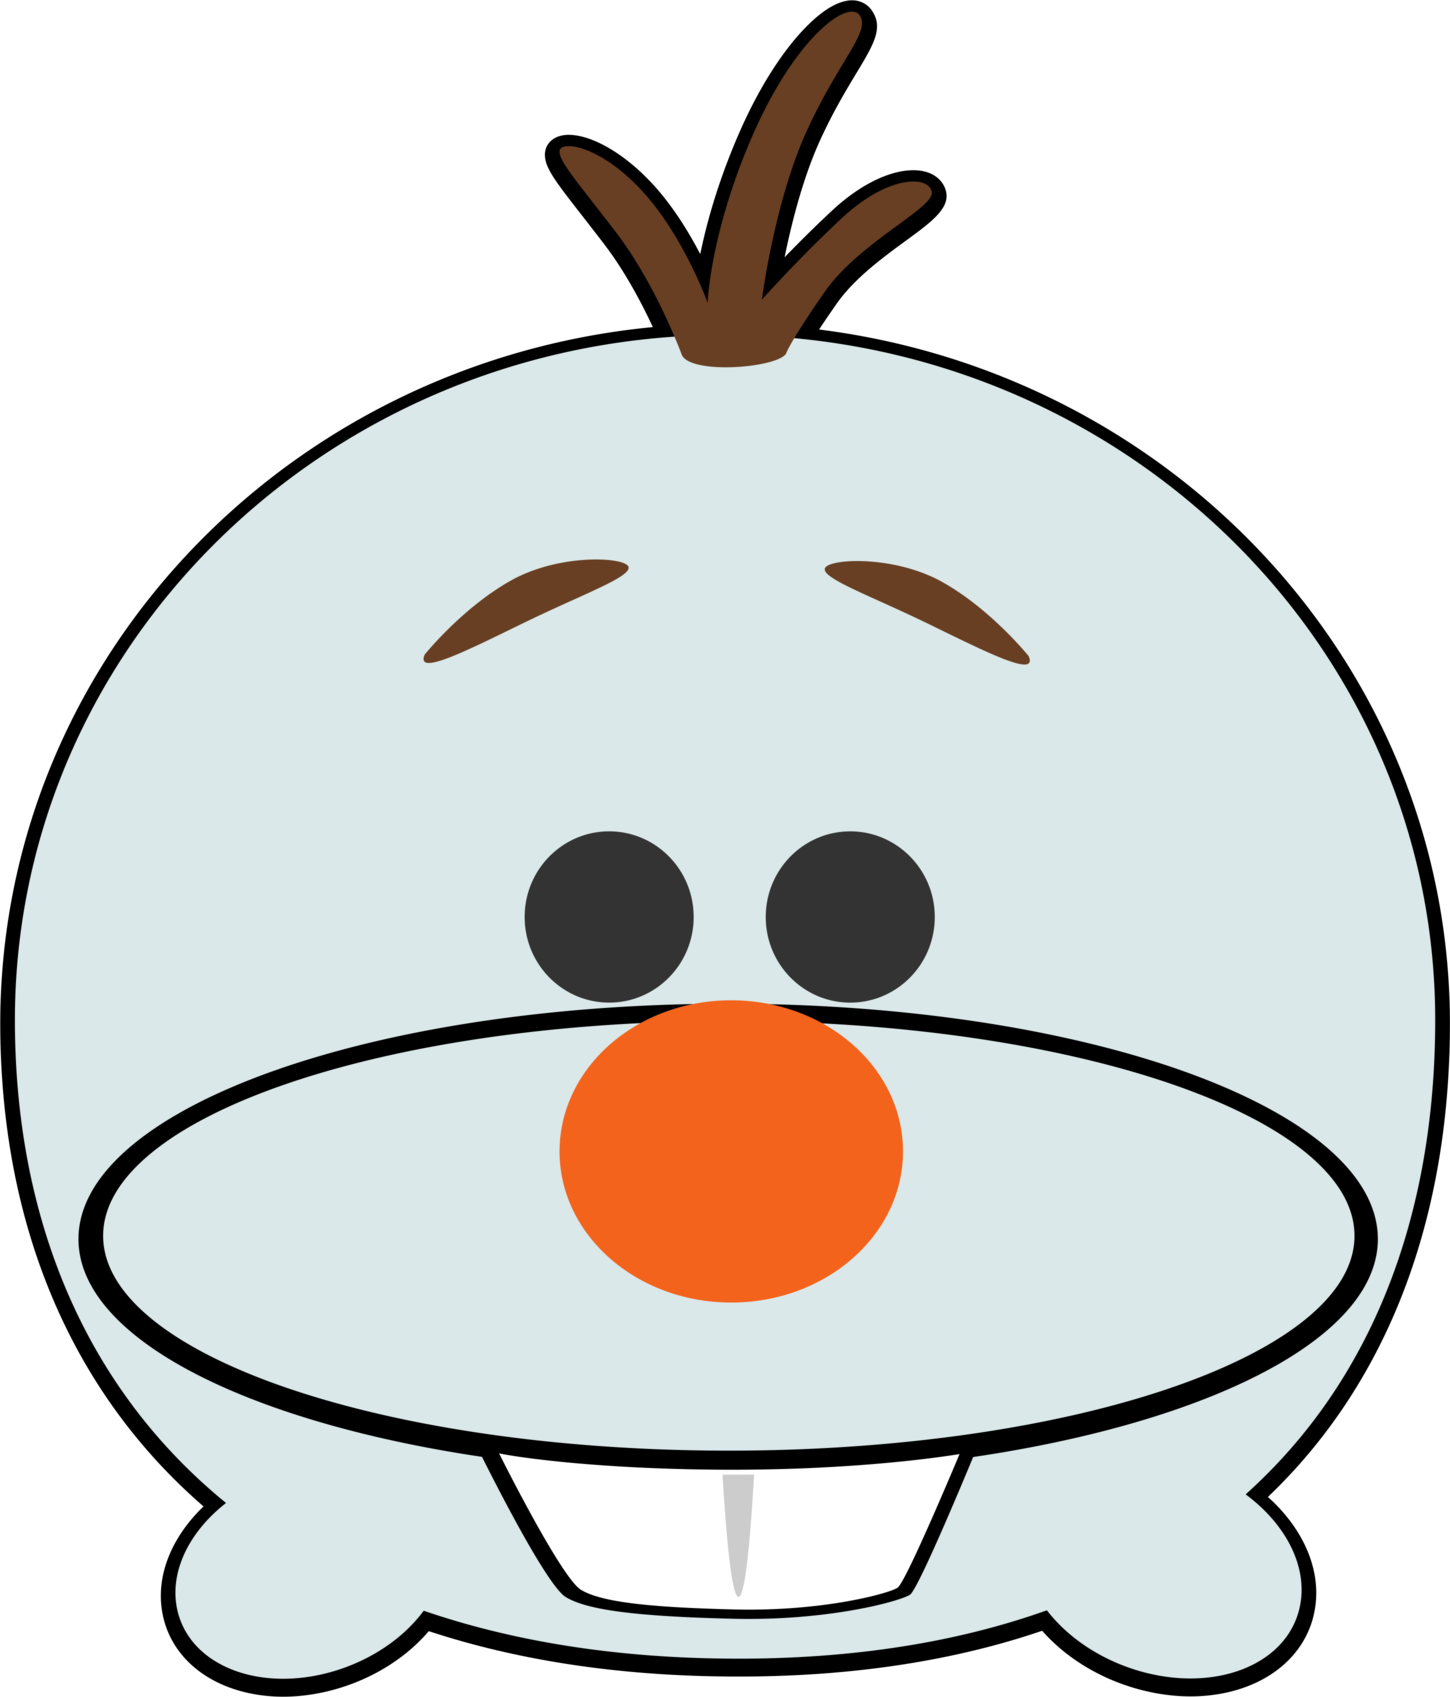 Frozen clipart olaf. At getdrawings com free